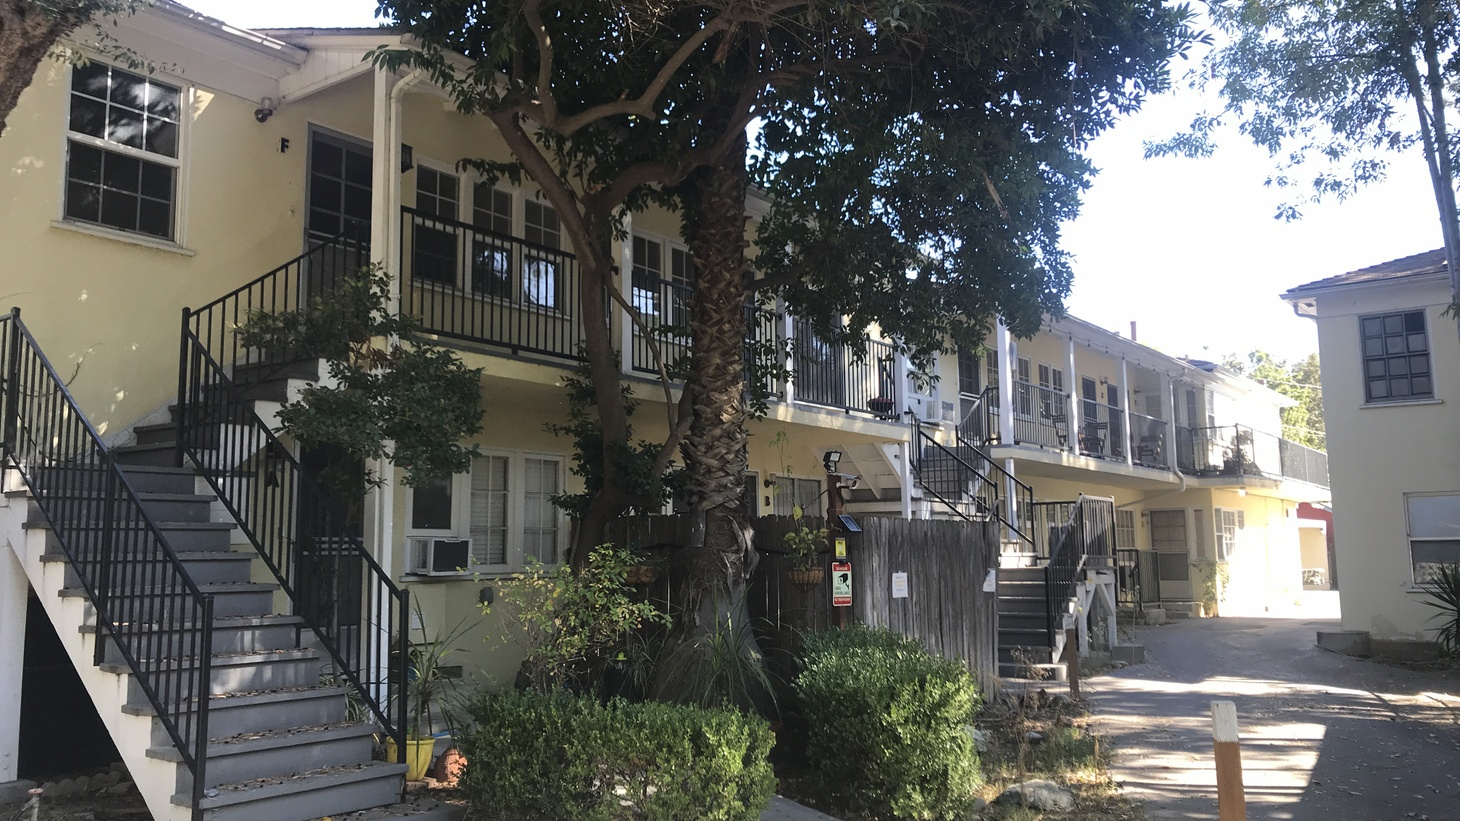 A Caltrans-owned apartment building on 626 Prospect Ave. in South Pasadena.